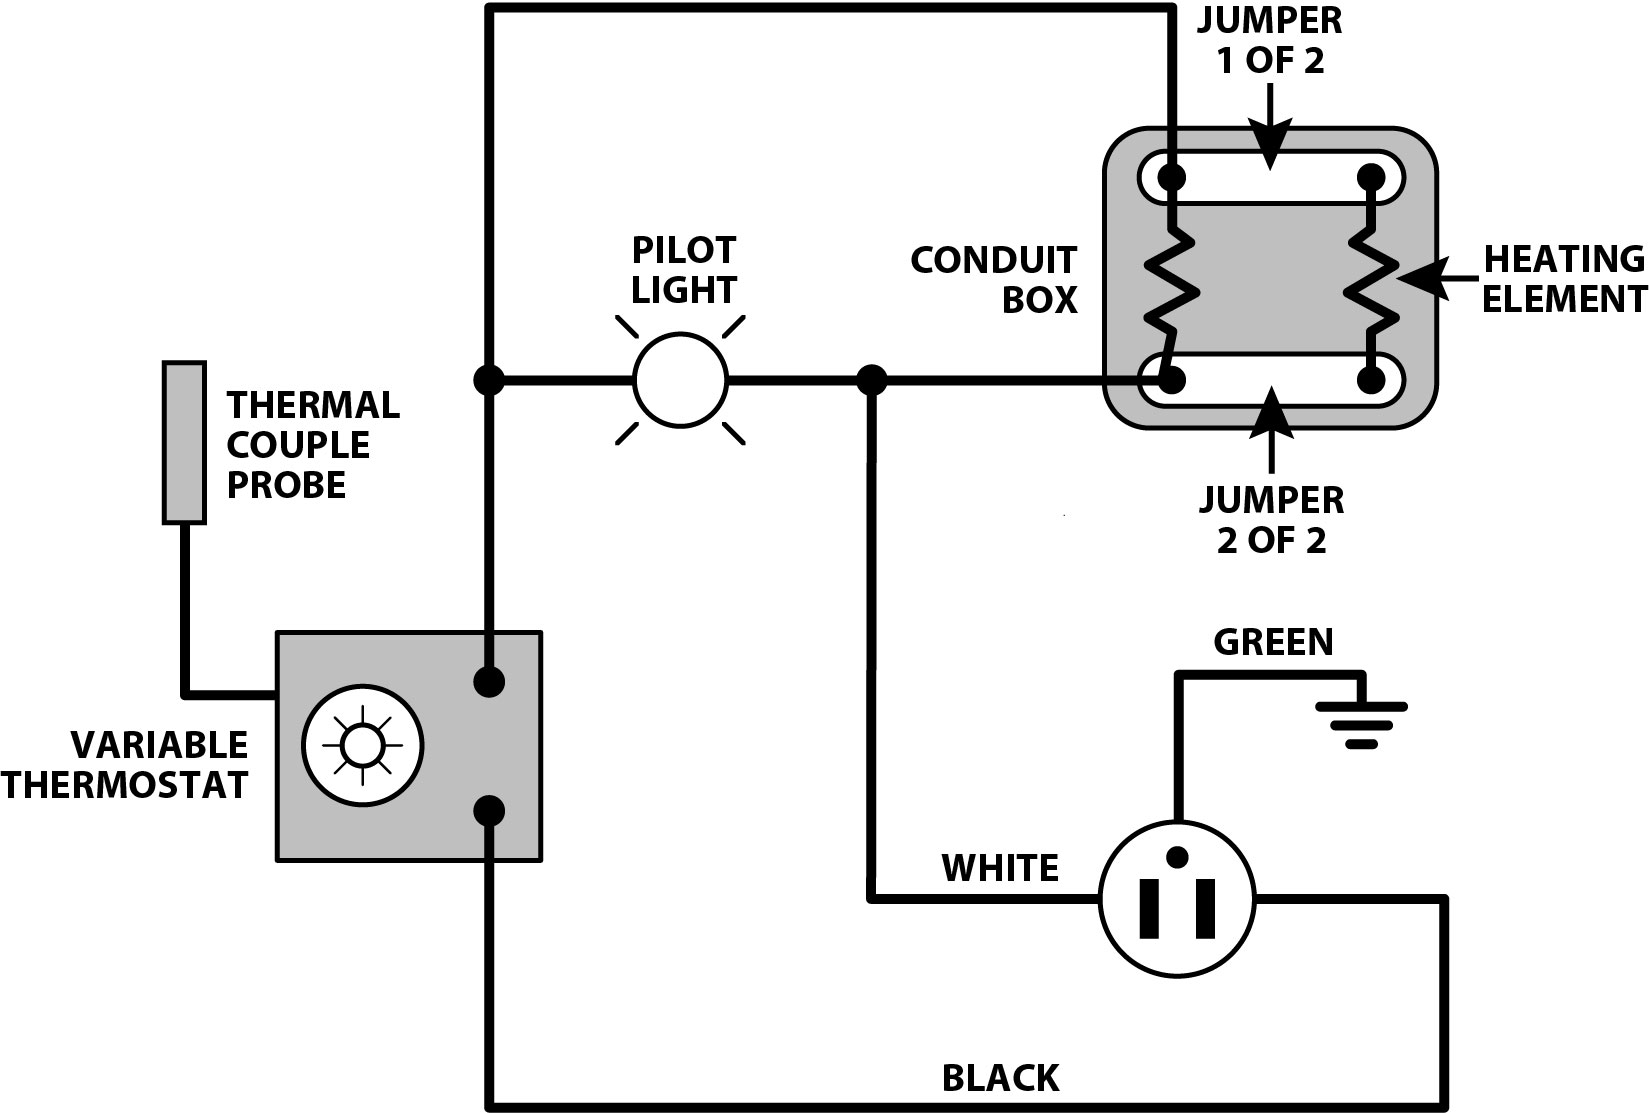 photocell wiring diagrams with Type 900 Bench Rod Ovens on 83 Dp1d Dsi High Frequency Controllers Plated together with How To Wire A 3 Way Switch Wiring Diagram in addition 240 Volt Relay Wiring Diagram also Wiring Diagram For 12 Volt Yard Lights further Single Channel Rc Cars Tx And Rx.